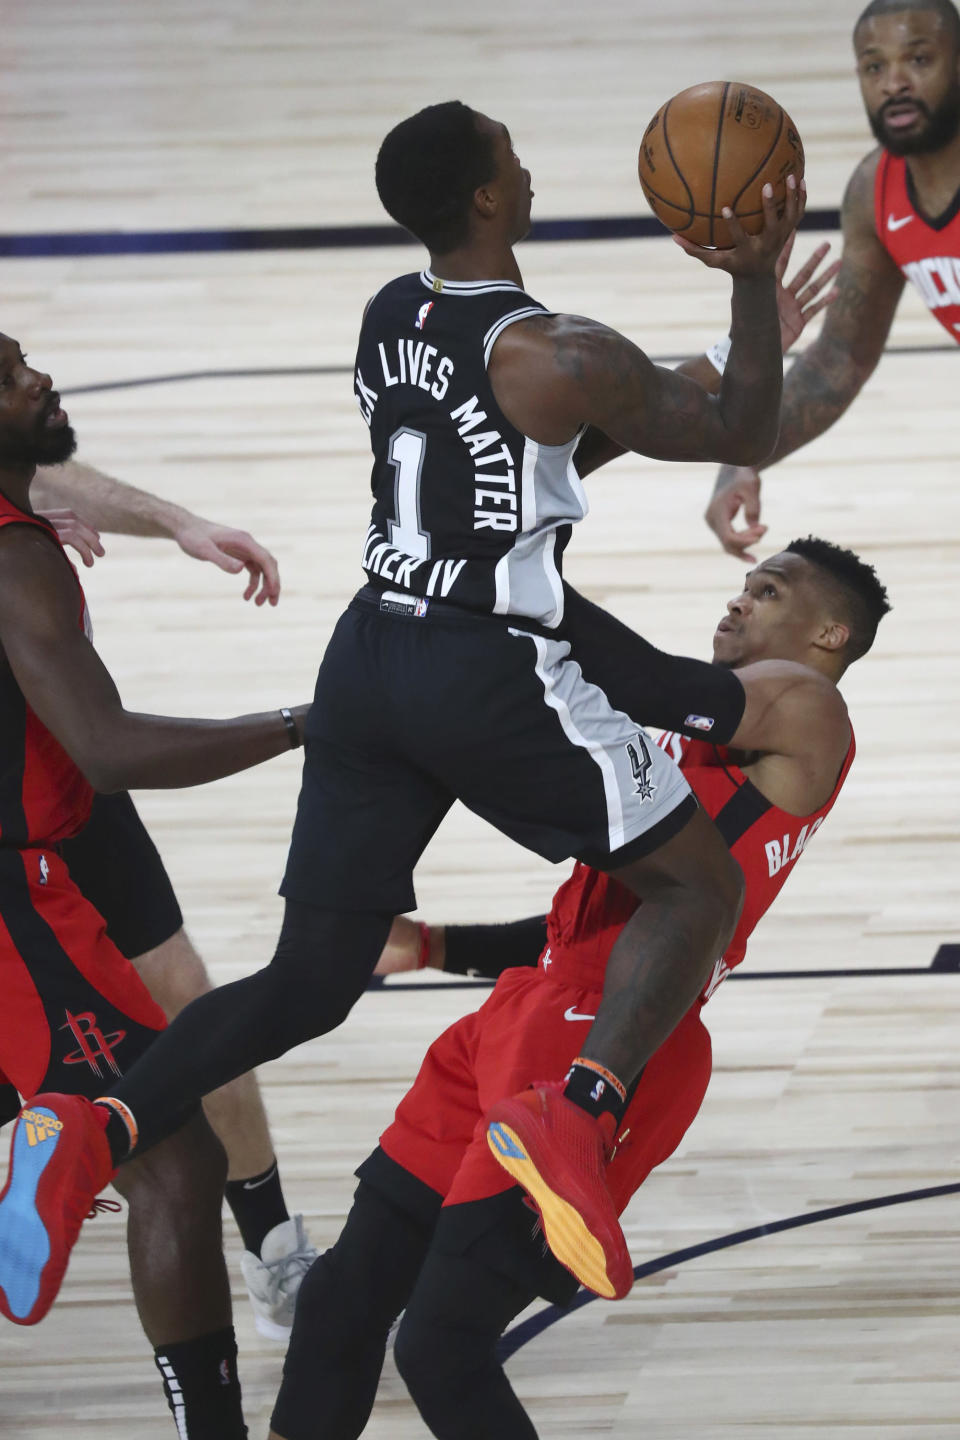 San Antonio Spurs guard Lonnie Walker IV (1) runs into Houston Rockets guard Russell Westbrook (0) while attempting a shot, resulting in an offensive foul during the second half of a NBA basketball game Tuesday, Aug. 11, 2020, in Lake Buena Vista, Fla. (Kim Klement/Pool Photo via AP)